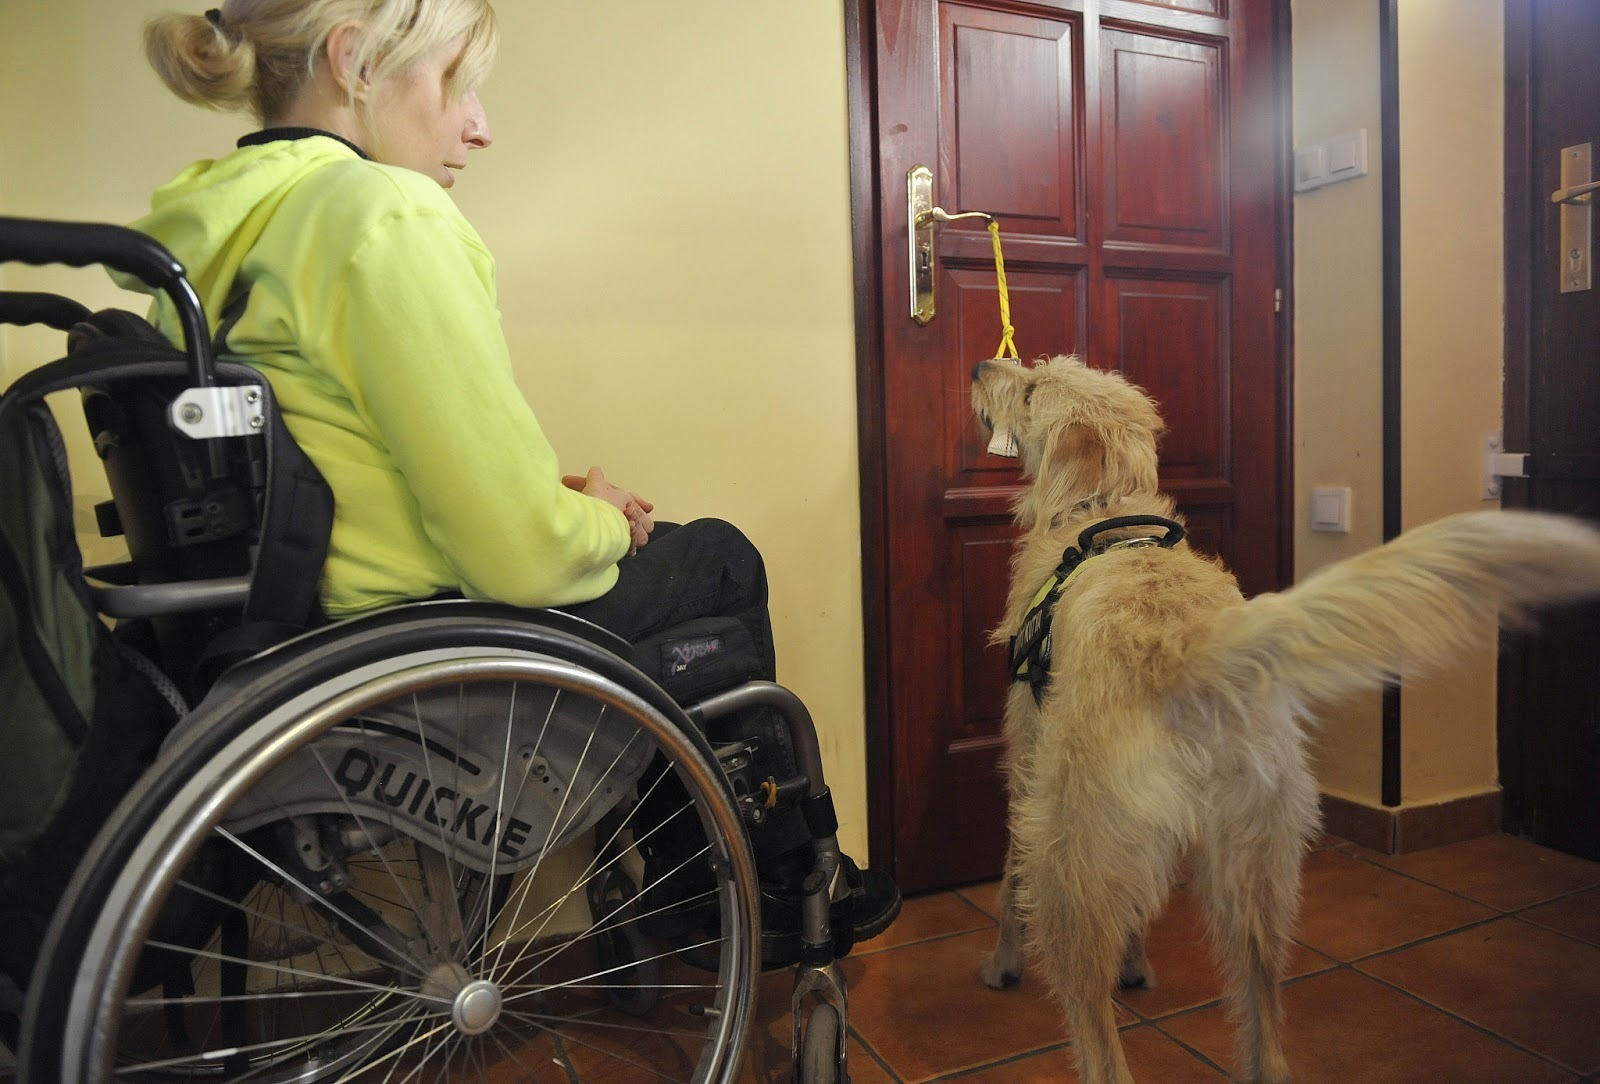 A service dog's company provides more freedom for a disabled person